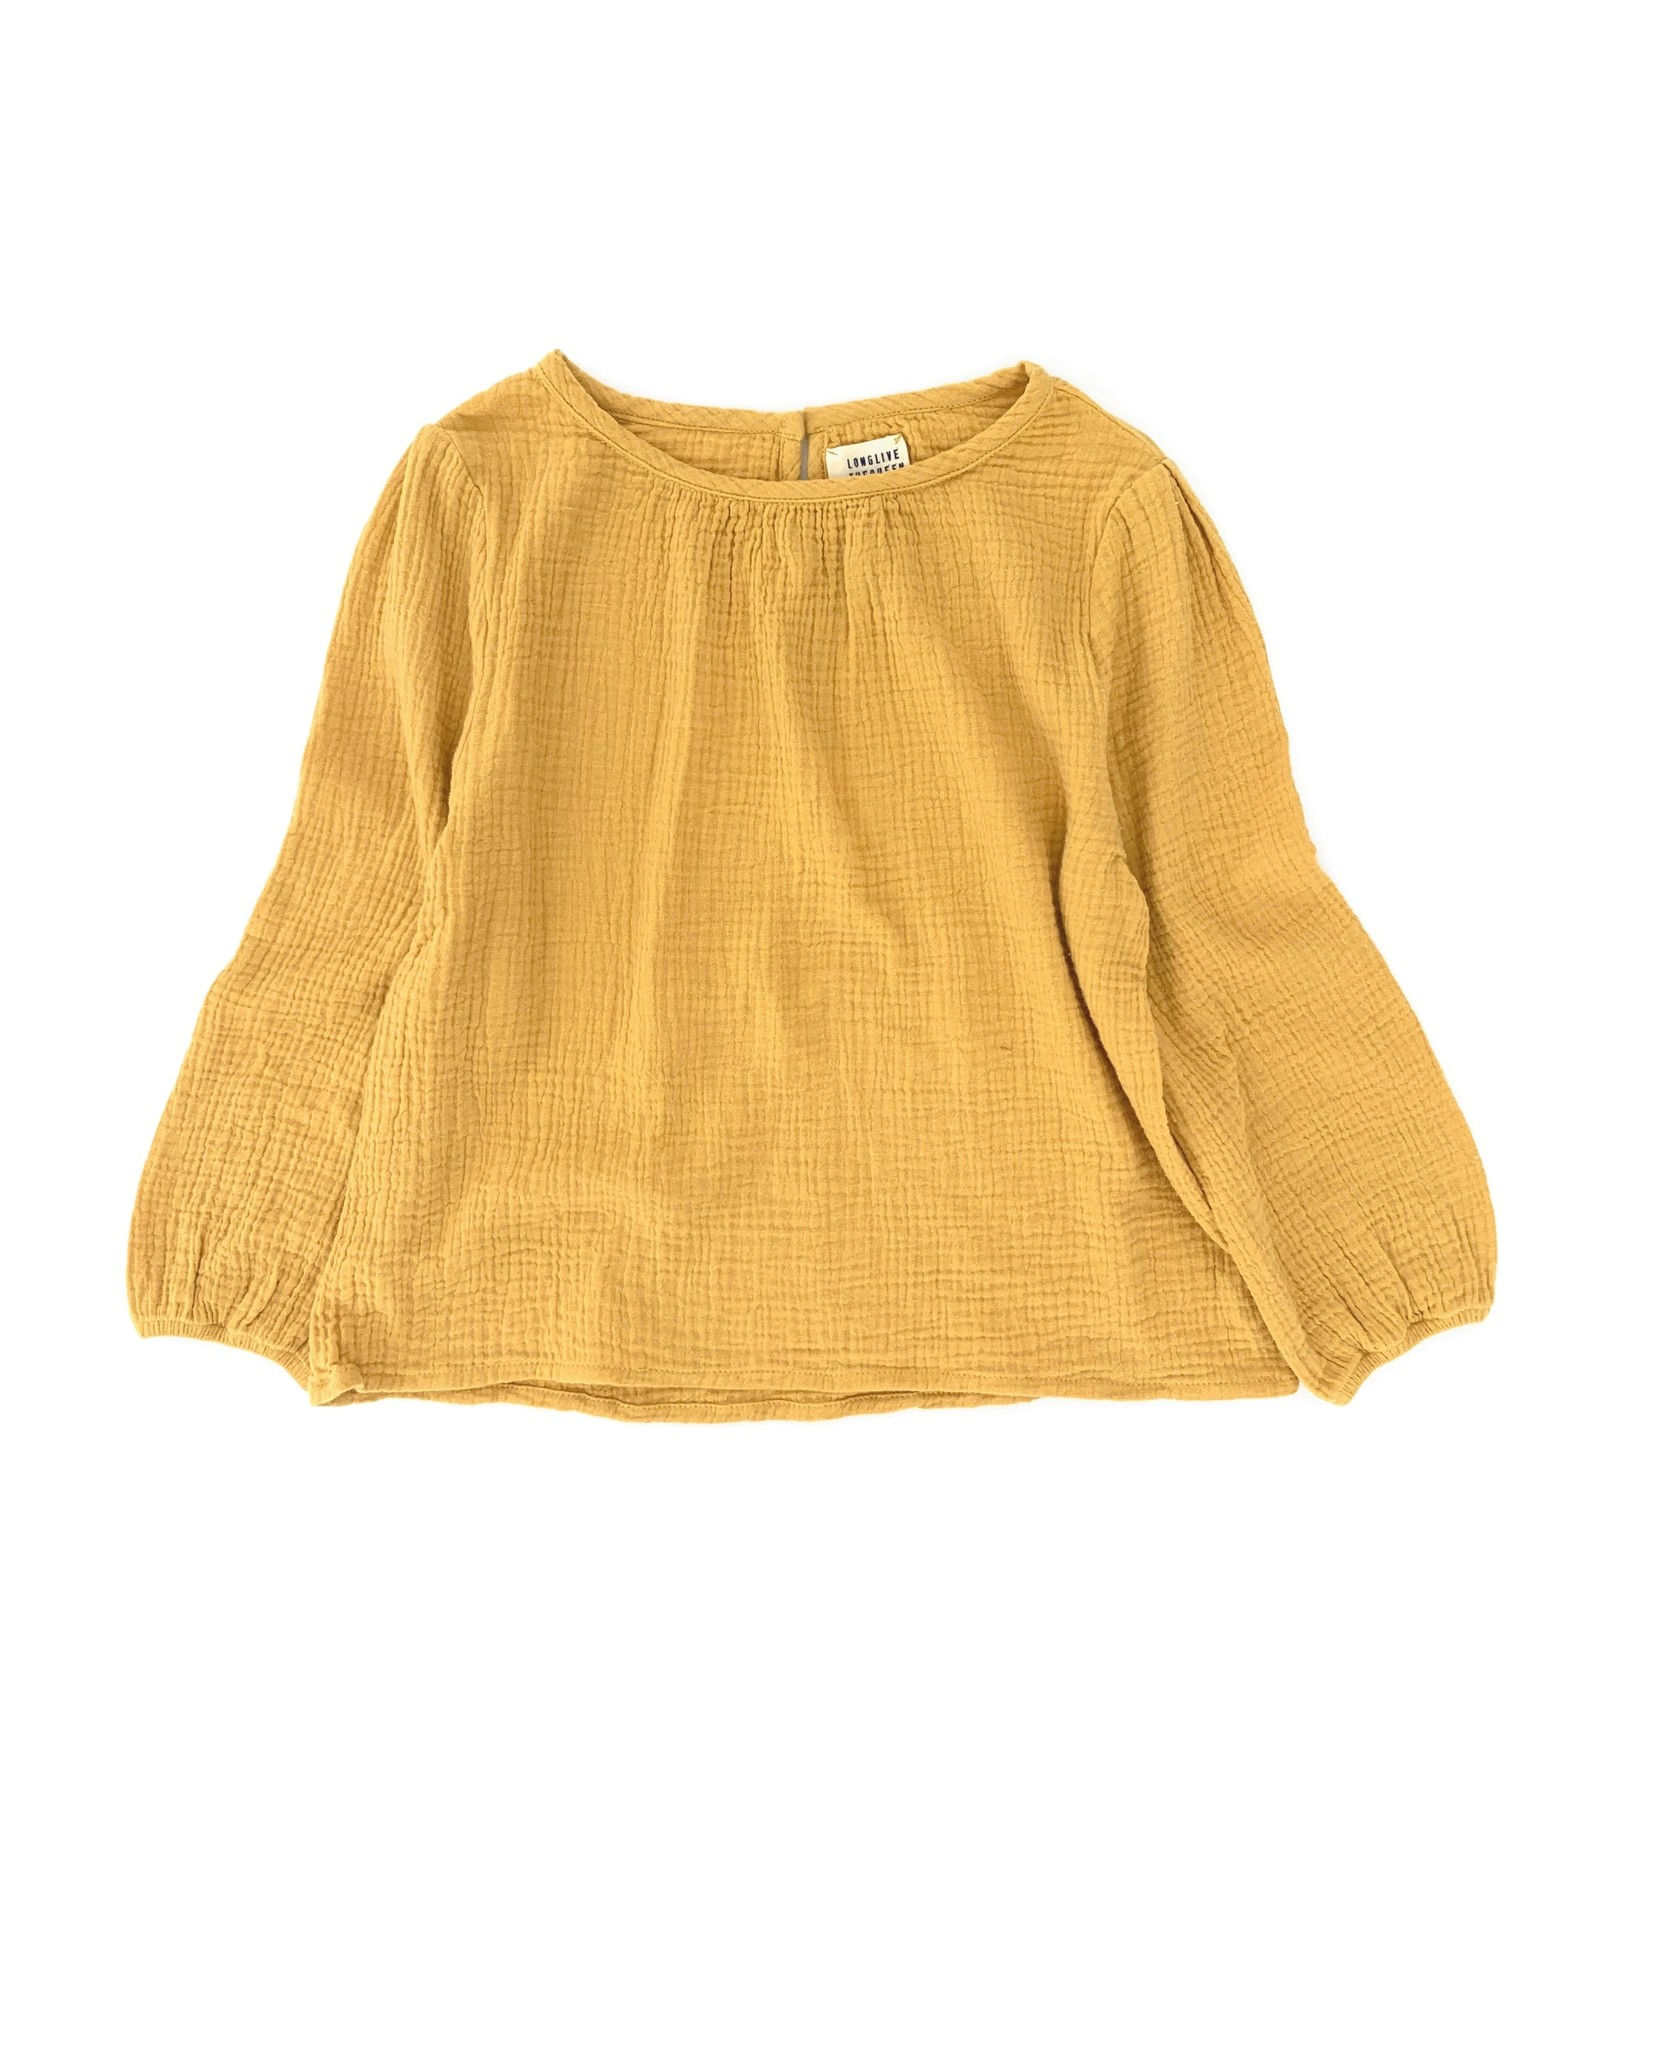 Crinkle blouse - Dirty Yellow-1